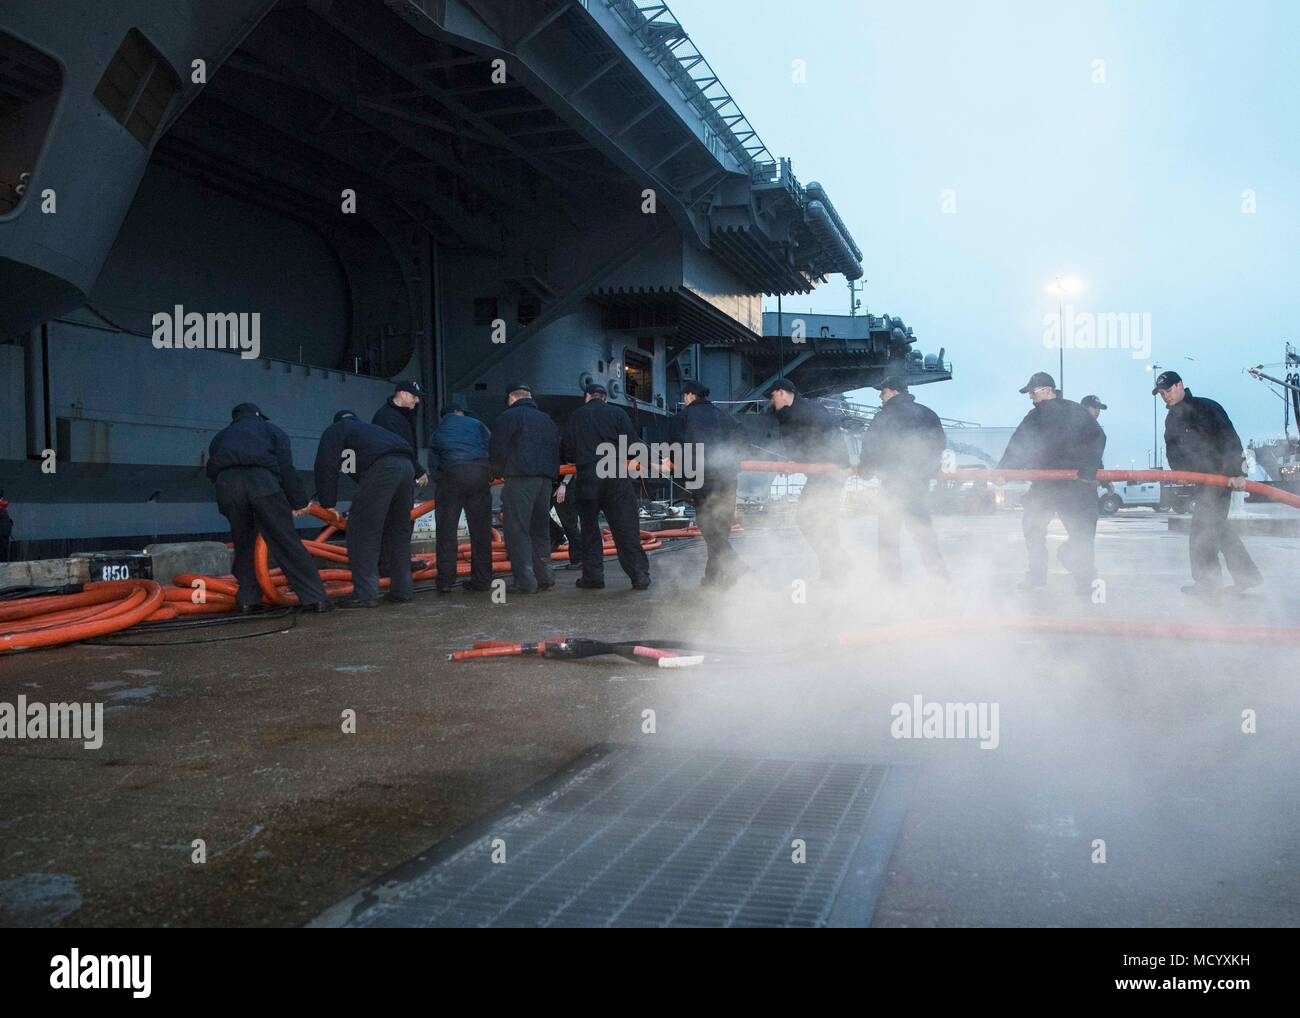 180307-N-YP246-0051 NORFOLK (March 7, 2018) Sailors disconnect shore power cables from the Nimitz-class aircraft carrier USS Abraham Lincoln (CVN 72) in preparation for getting underway.  (Mass Communication Specialist Seaman Darcy McAtee/Released) - Stock Image